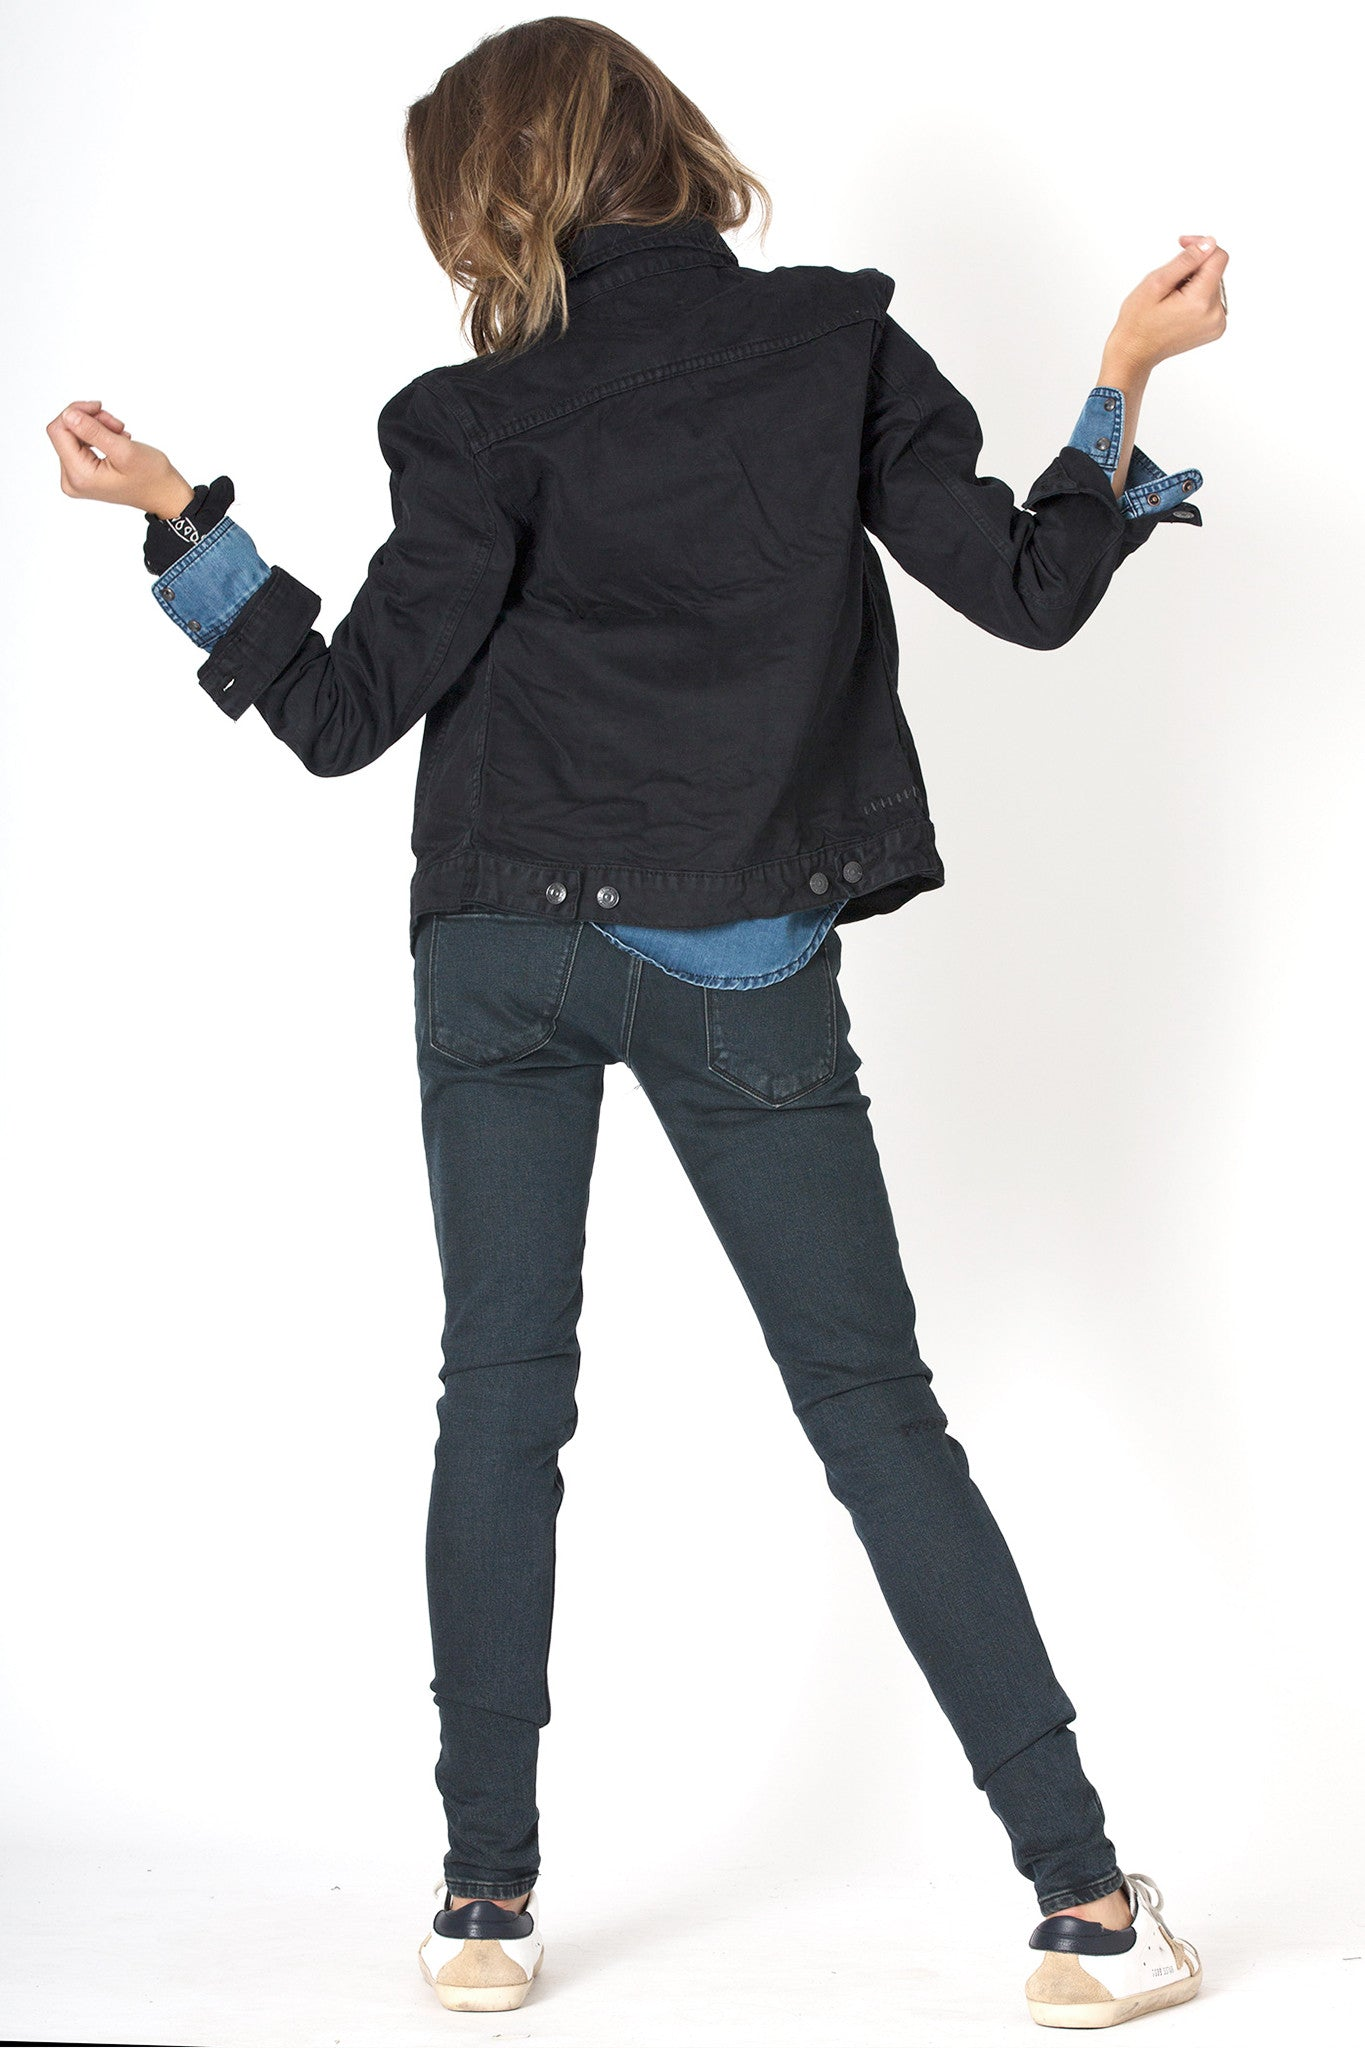 #1G12F Unisex Jacket Wash Black - denimcolab